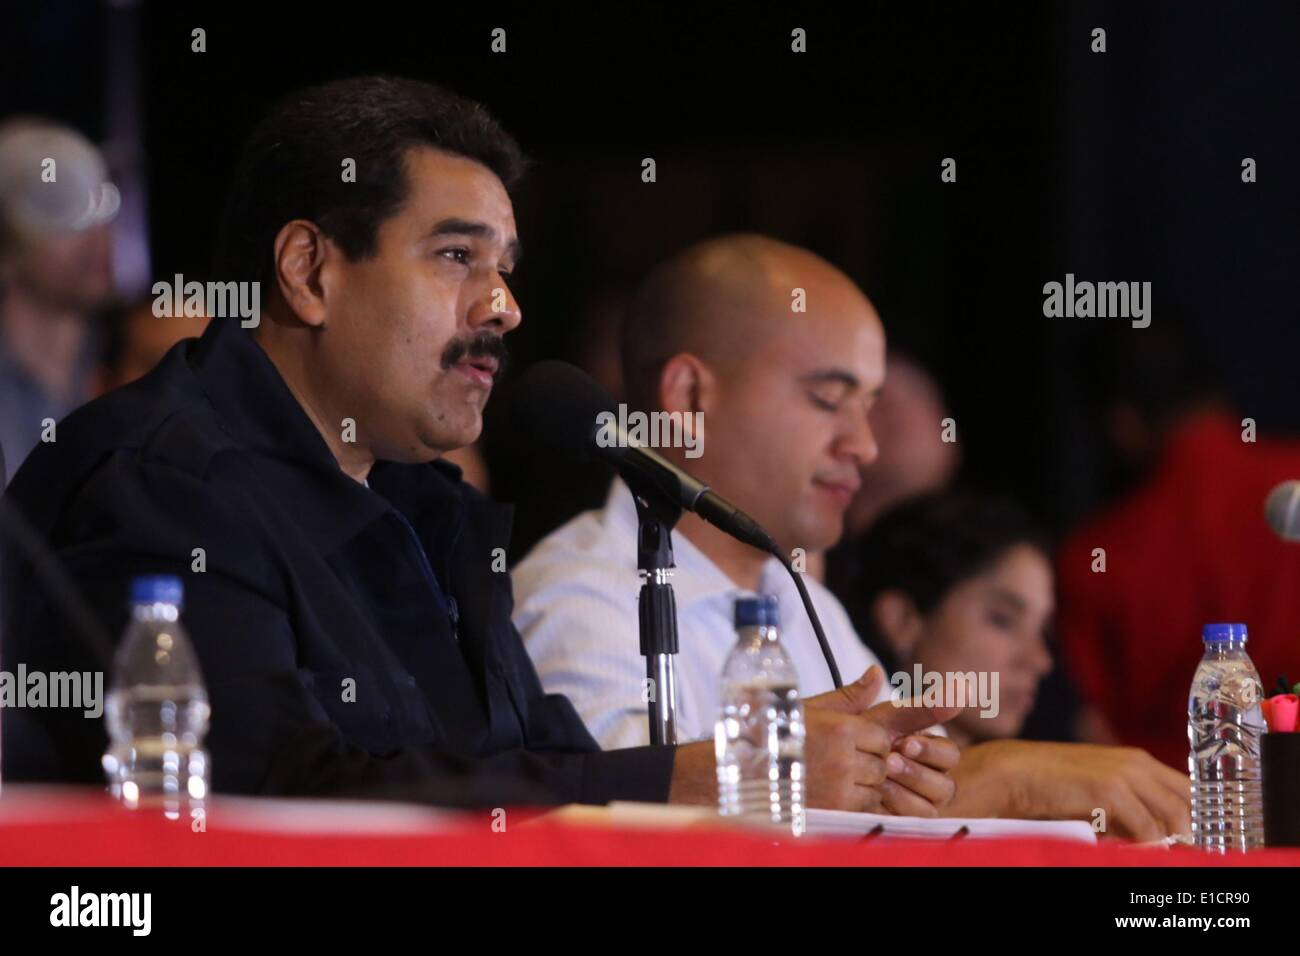 Caracas, Venezuela. 30th May, 2014. Venezuela's President, Nicolas Maduro (L), attends an national encounter of missionaires, at Venezuela's Military Academy Theater, in Caracas, Venezuela, on May 30, 2014. During the encounter, Maduro assured that through the govern programs known as 'Social Missions', the bureaucracy scheme and the bourgeois state are broken. © Presidential Press/AVN/Xinhua/Alamy Live News - Stock Image